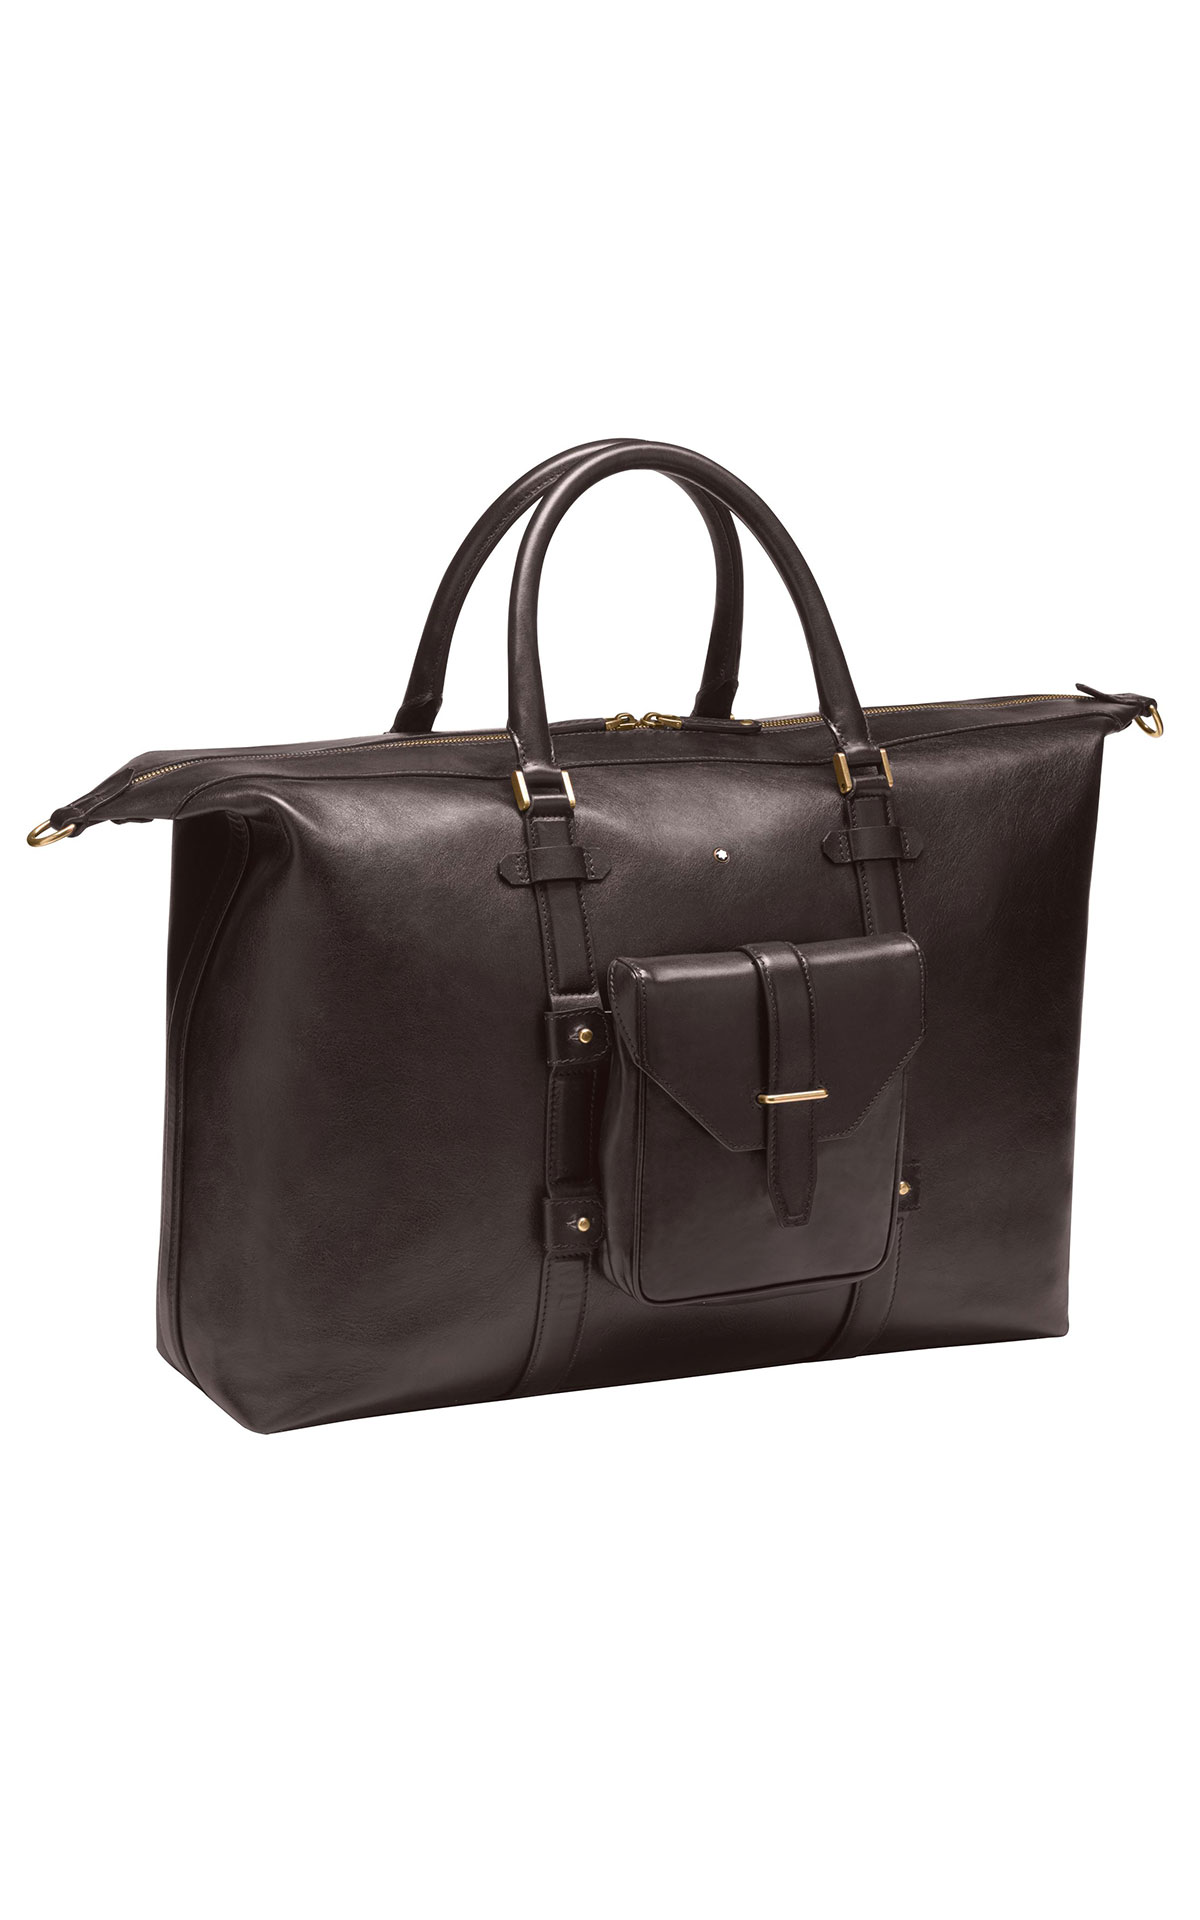 Montblanc Duffle Bag, Dark Brown from Bicester Village